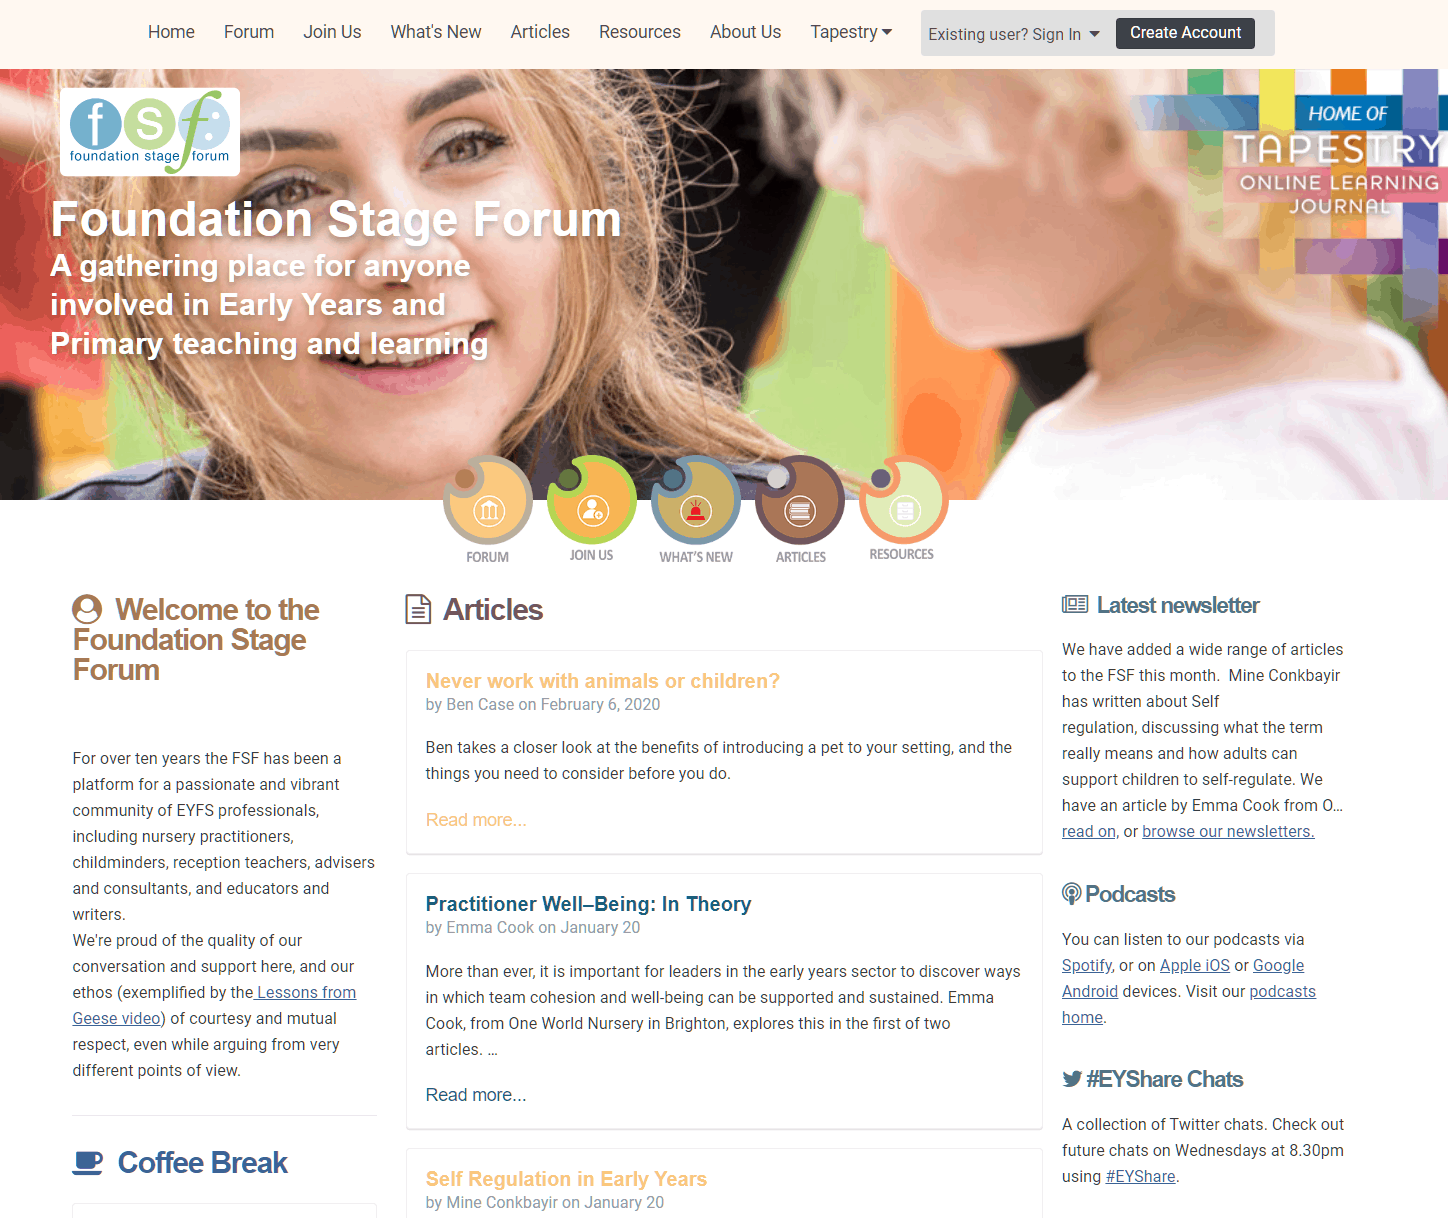 The Foundation Stage Forum homepage